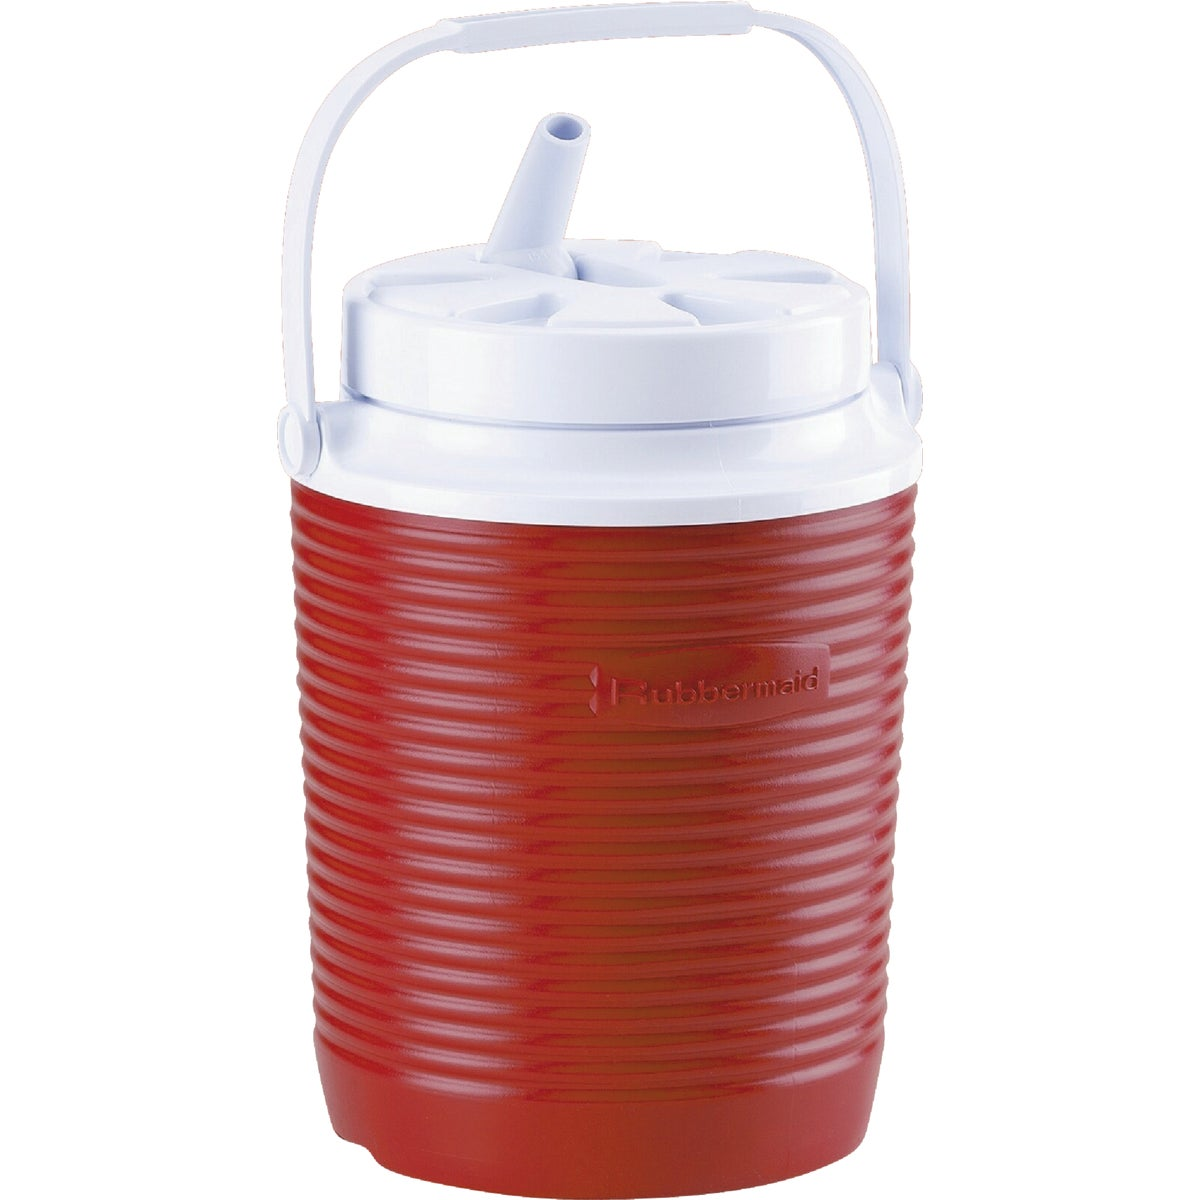 1GAL VICTORY JUG - 156006MODRD by Rubbermaid